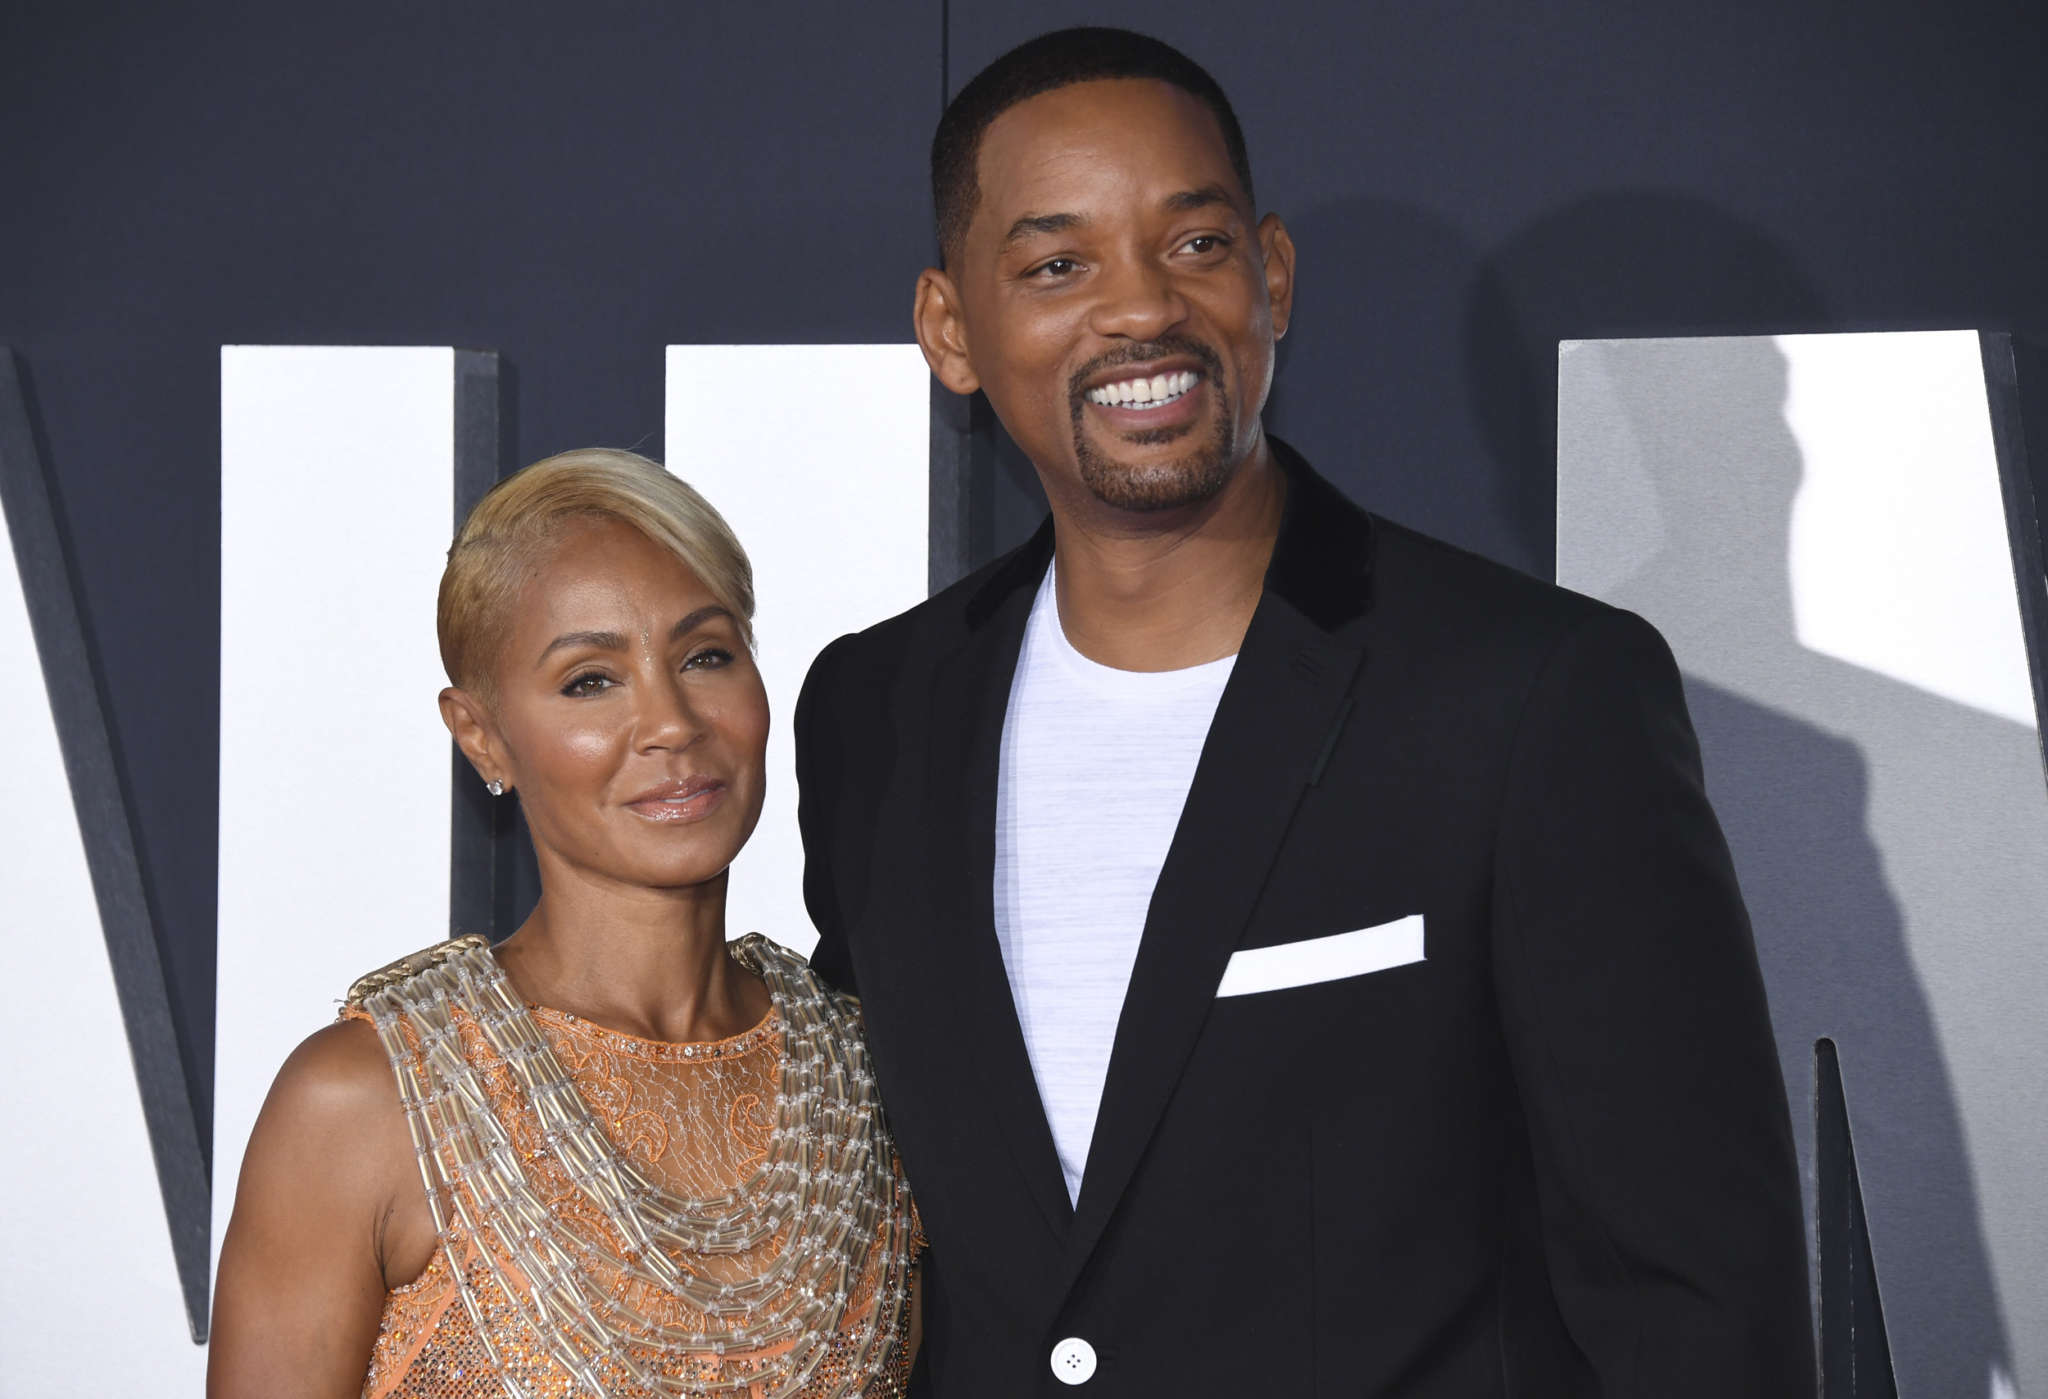 will-smith-and-jada-pinkett-smith-are-making-fun-of-the-entanglement-memes-see-the-funny-clip